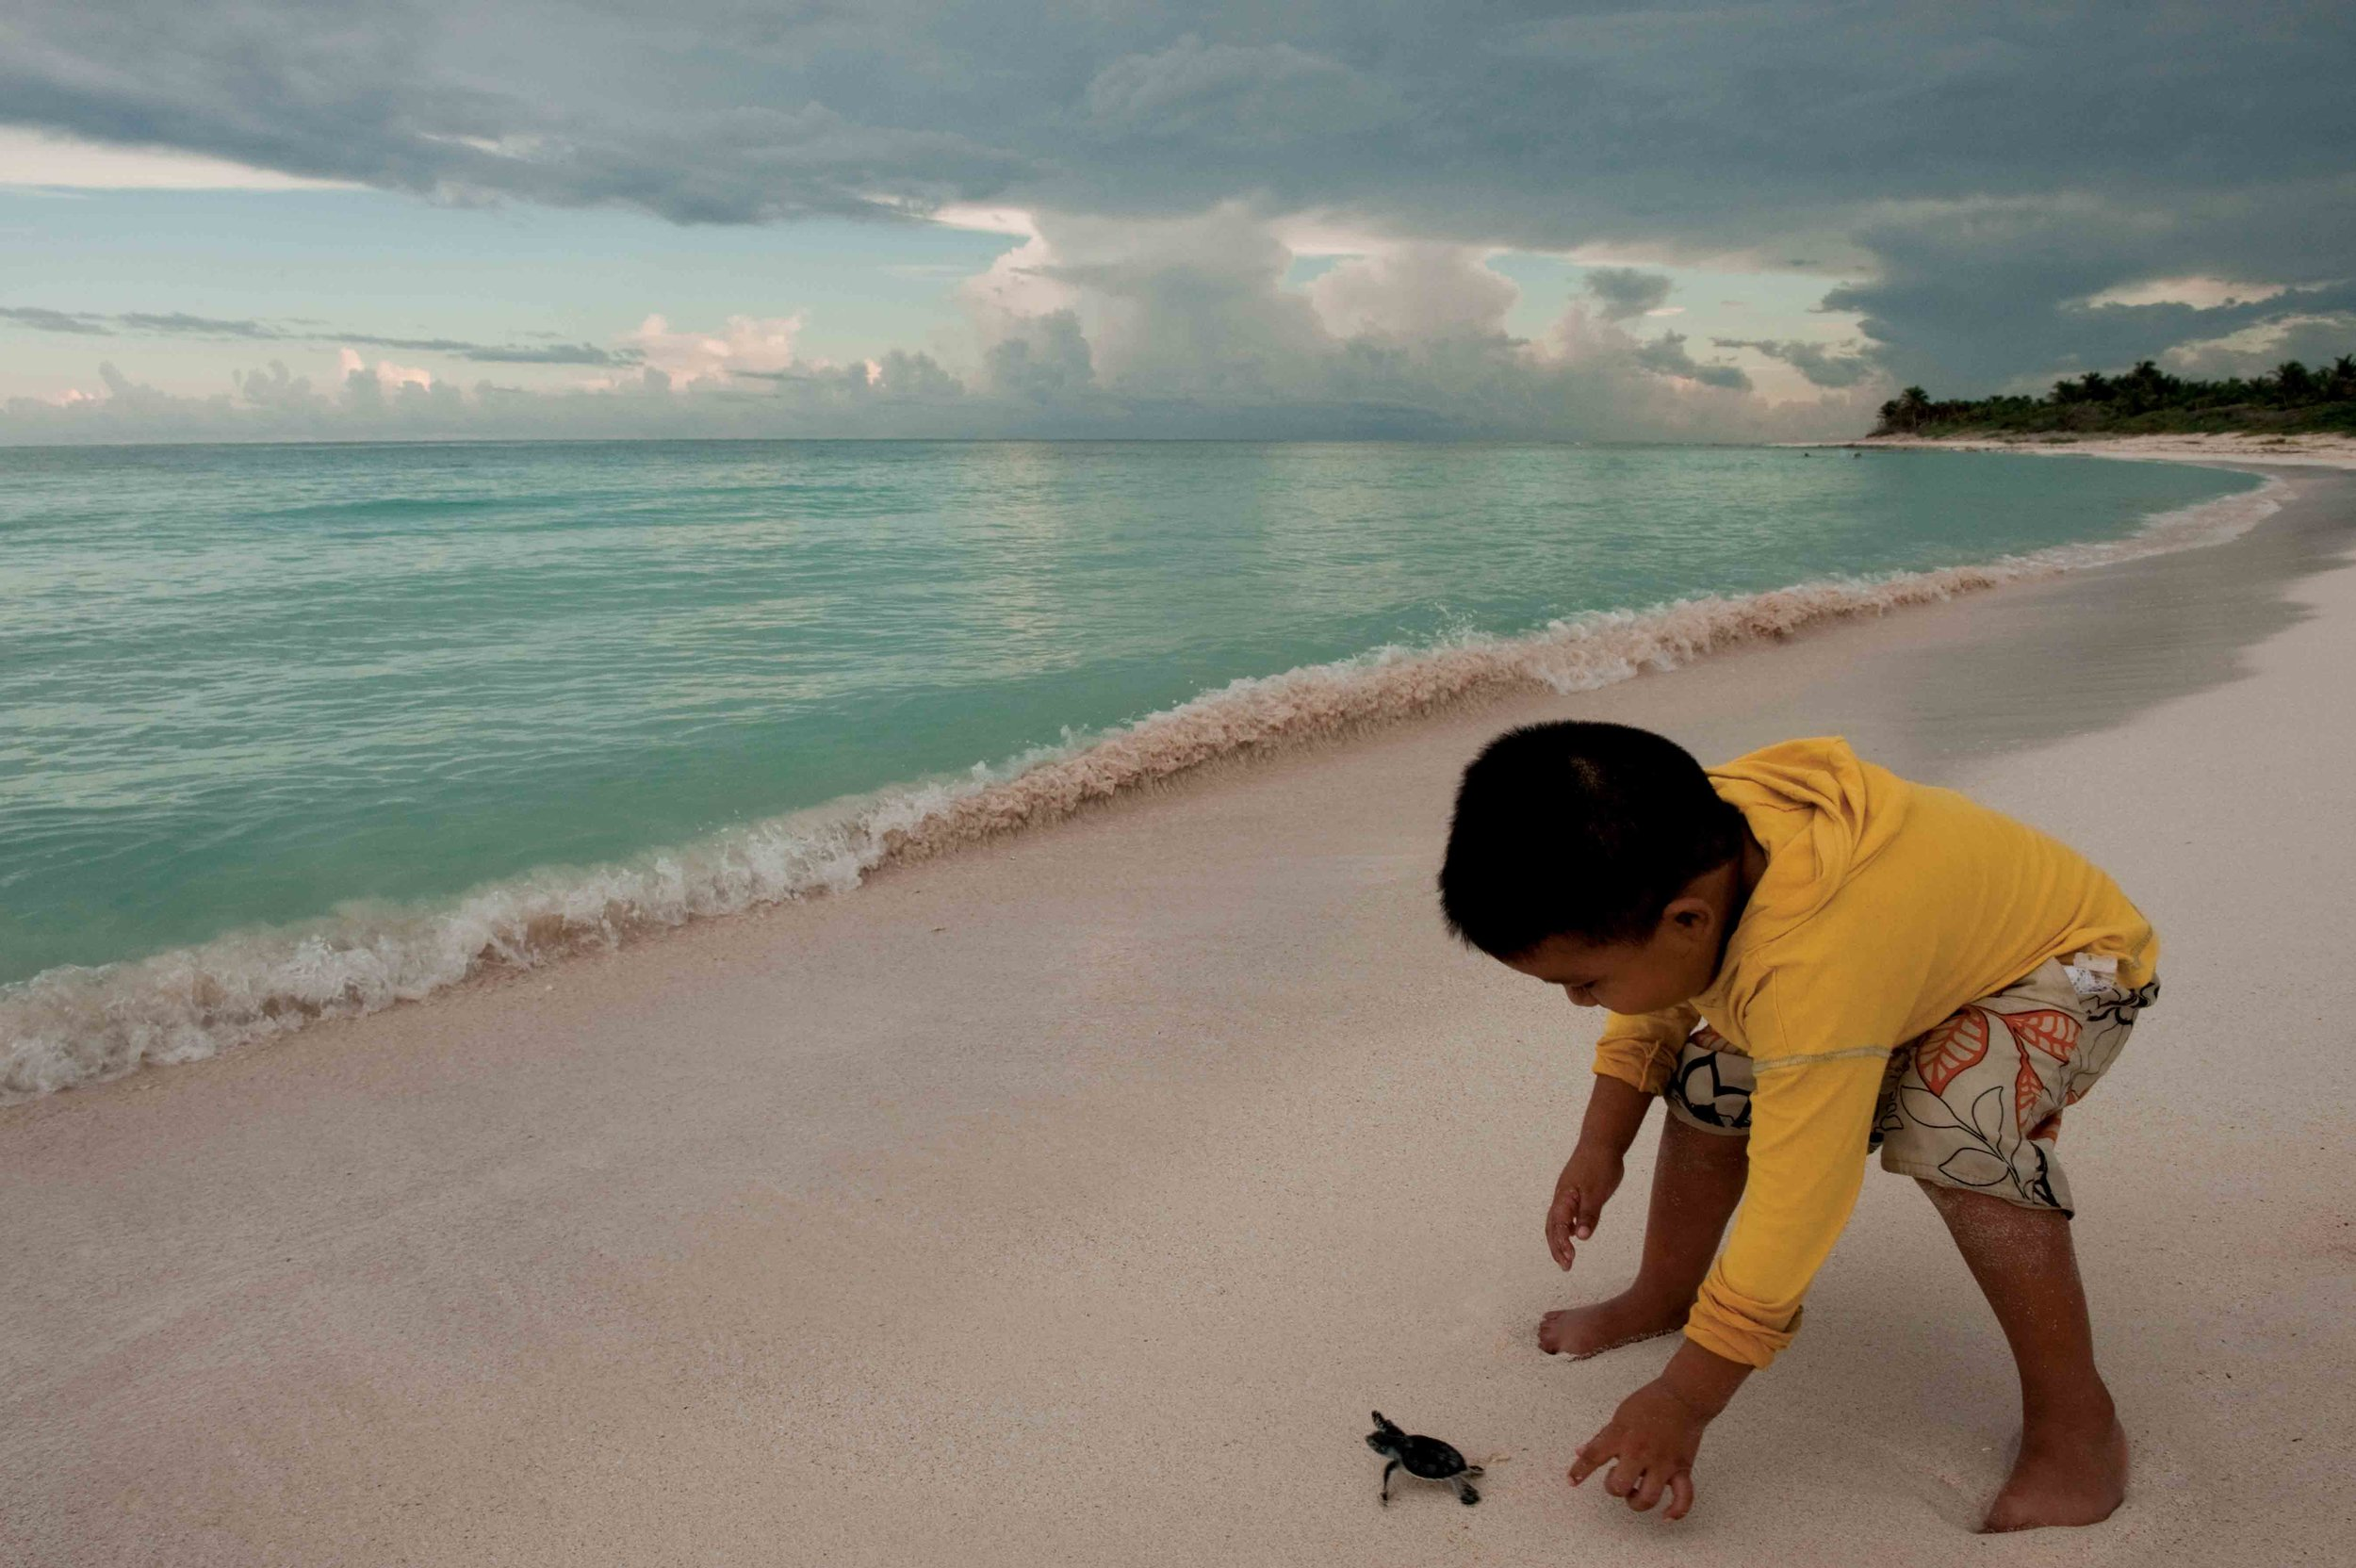 A boy releases a hatchling green turtle as part of a sea turtle festival in Quintana Roo, Mexico. © PETE OXFORD / ILCP